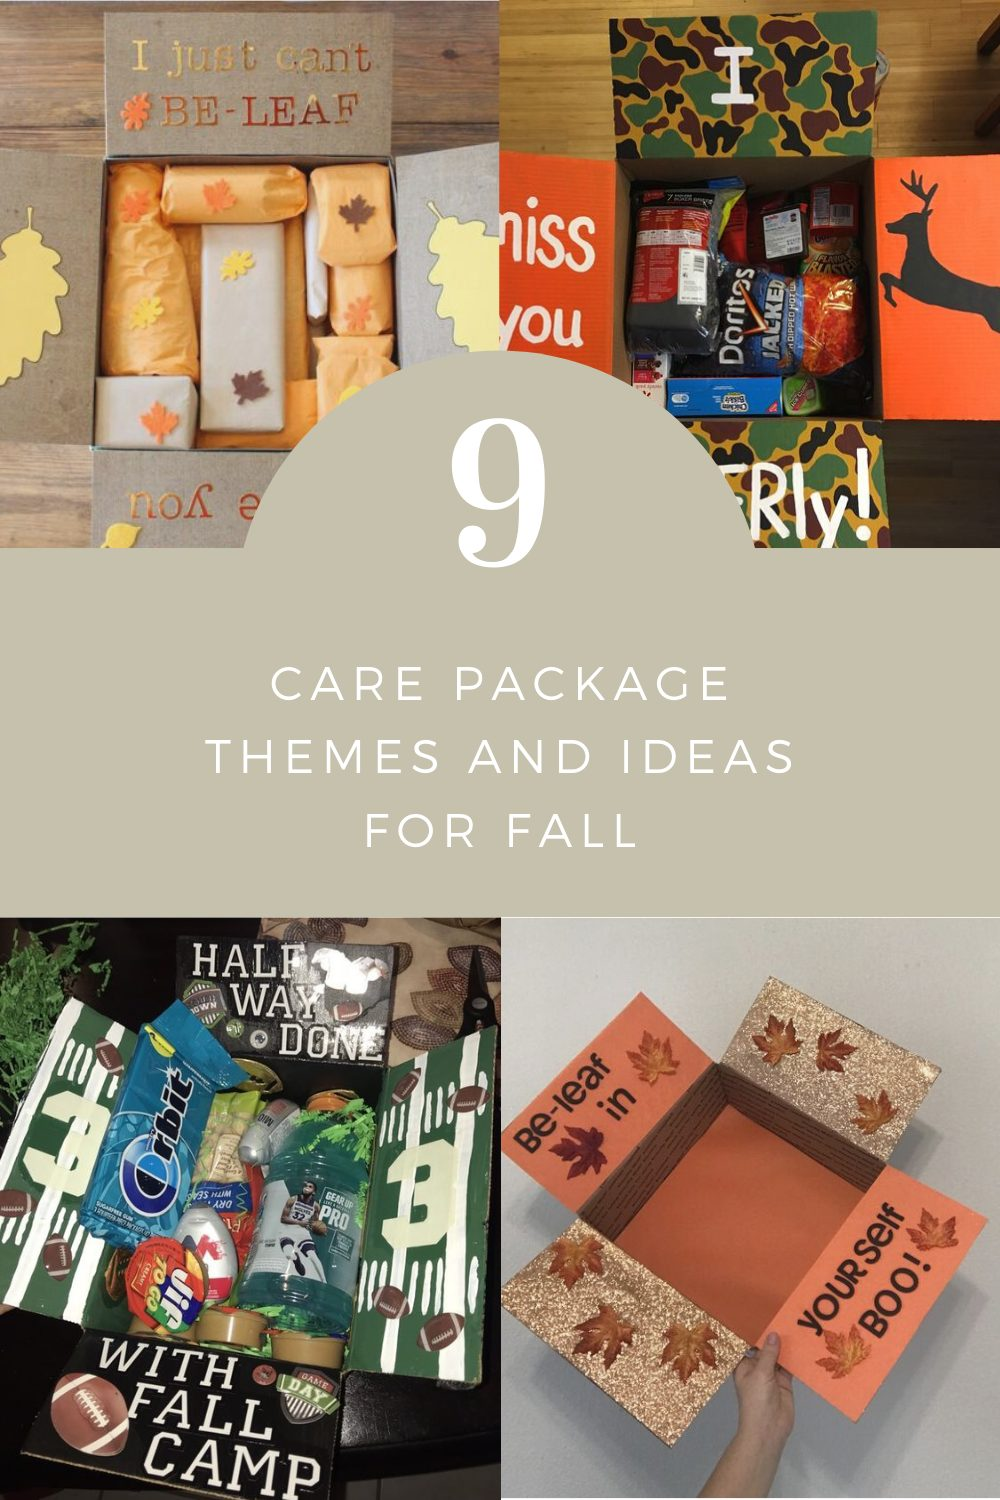 9 Care Package Themes and Ideas for Fall | Finding Mandee